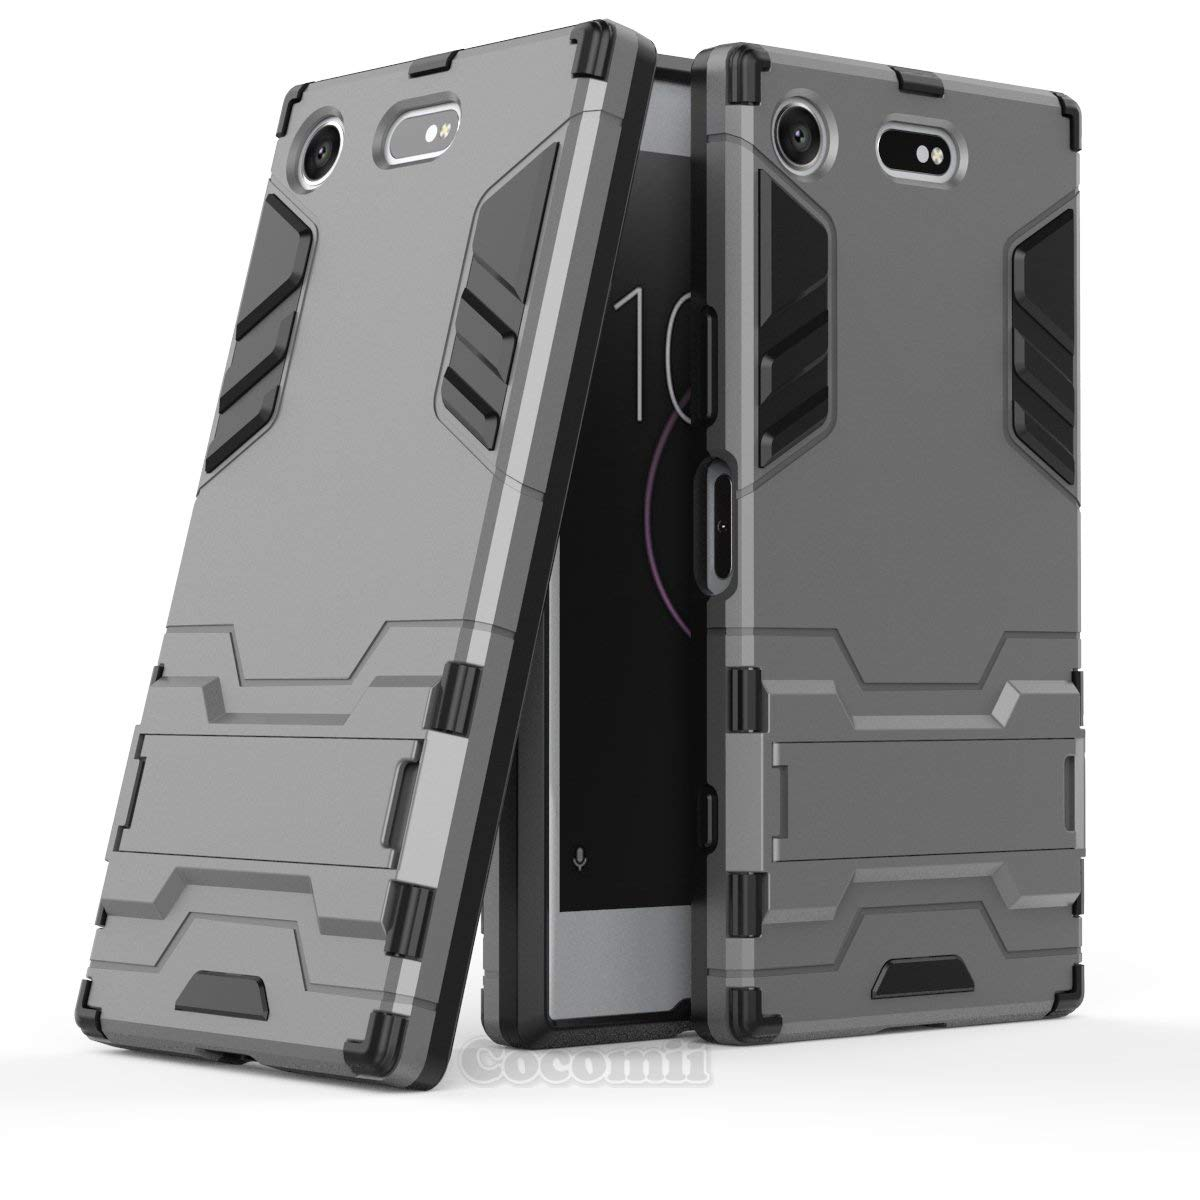 Cocomii Iron Man Armor Sony Xperia XZ1 Compact Case New [Heavy Duty] Premium Tactical Grip Kickstand Shockproof Bumper [Military Defender] Full Body Rugged Cover for Sony Xperia XZ1 Compact